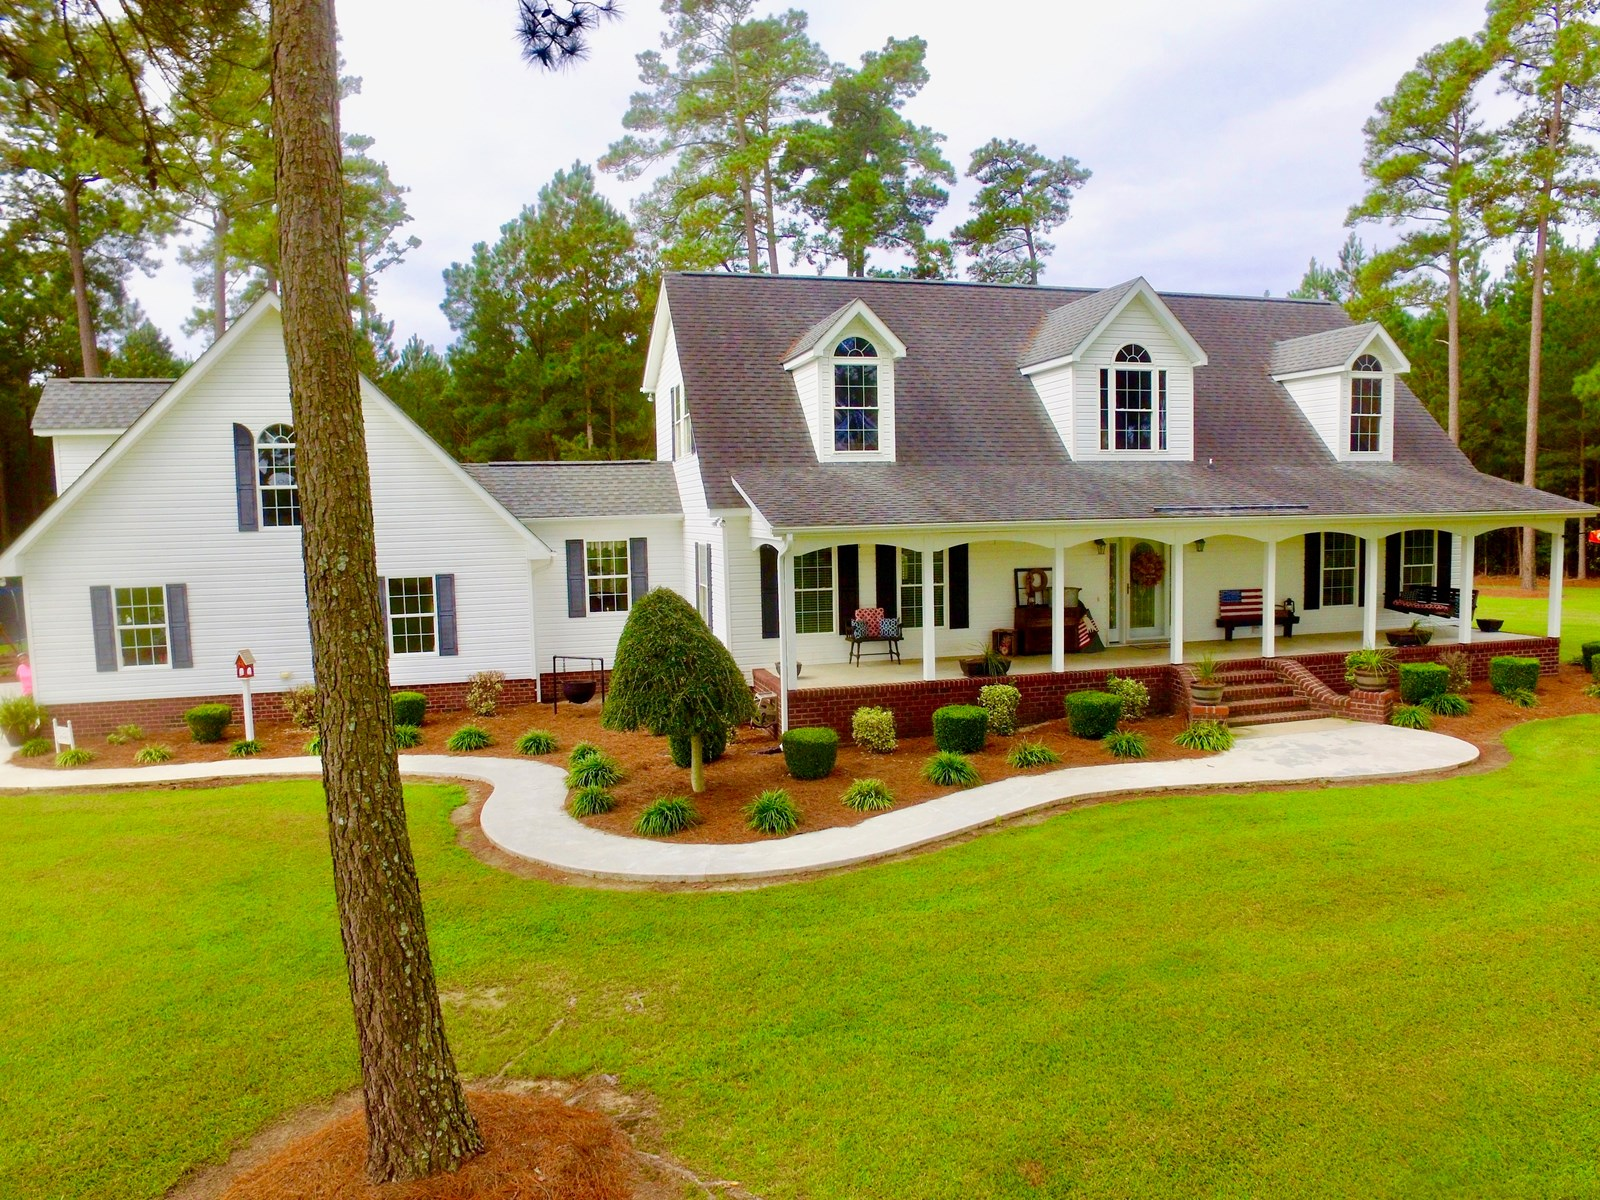 Country Home in Beaufort County, NC for Sale